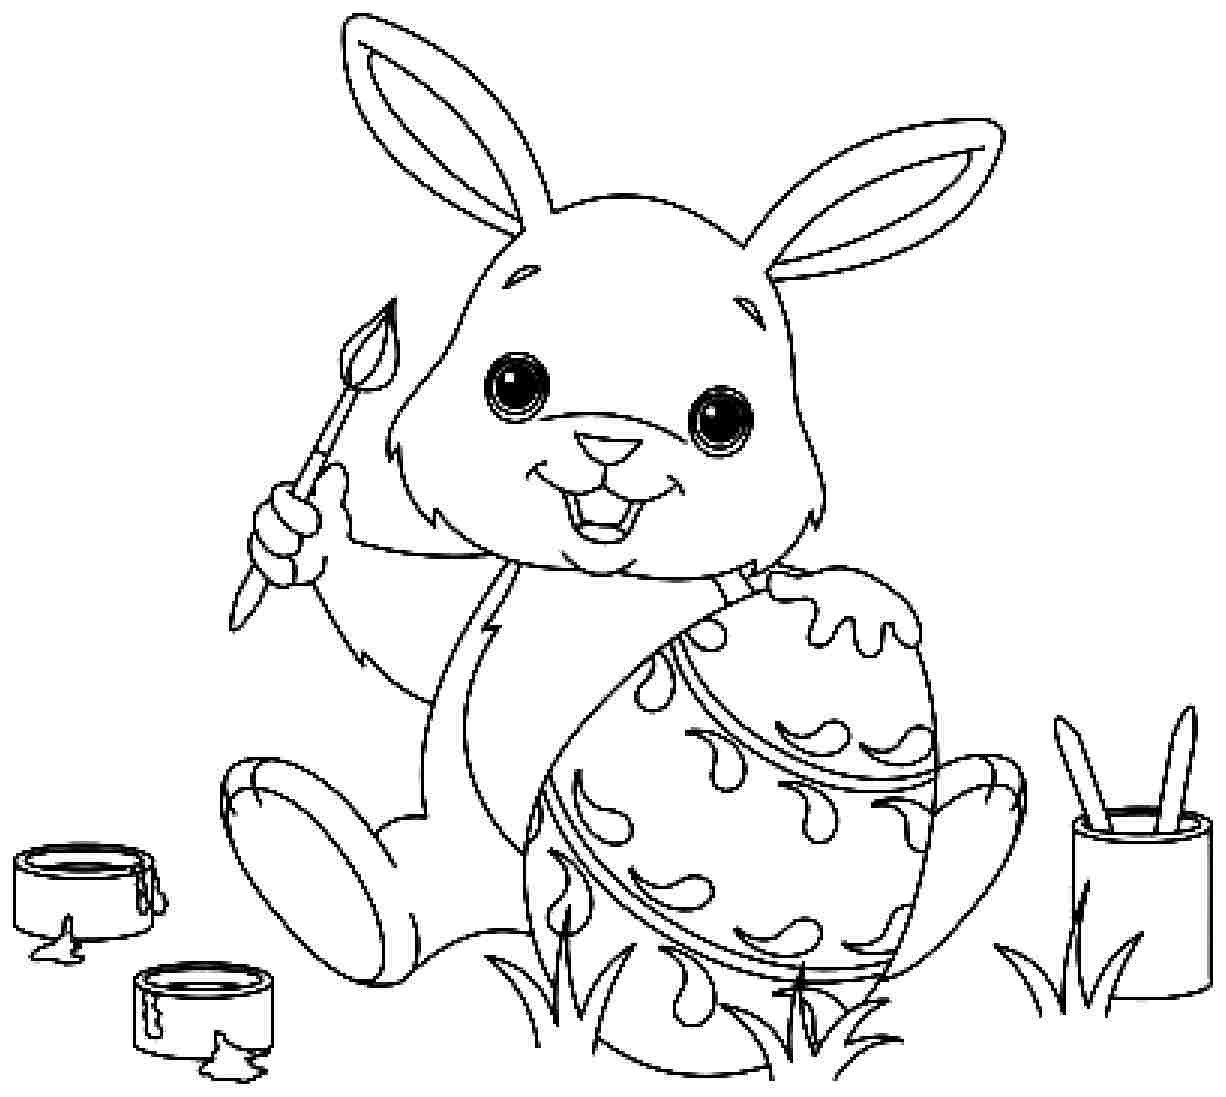 Best ideas about Easter Coloring Pages For Girls . Save or Pin 35 Best Easter Bunny Coloring Pages – WeNeedFun Now.